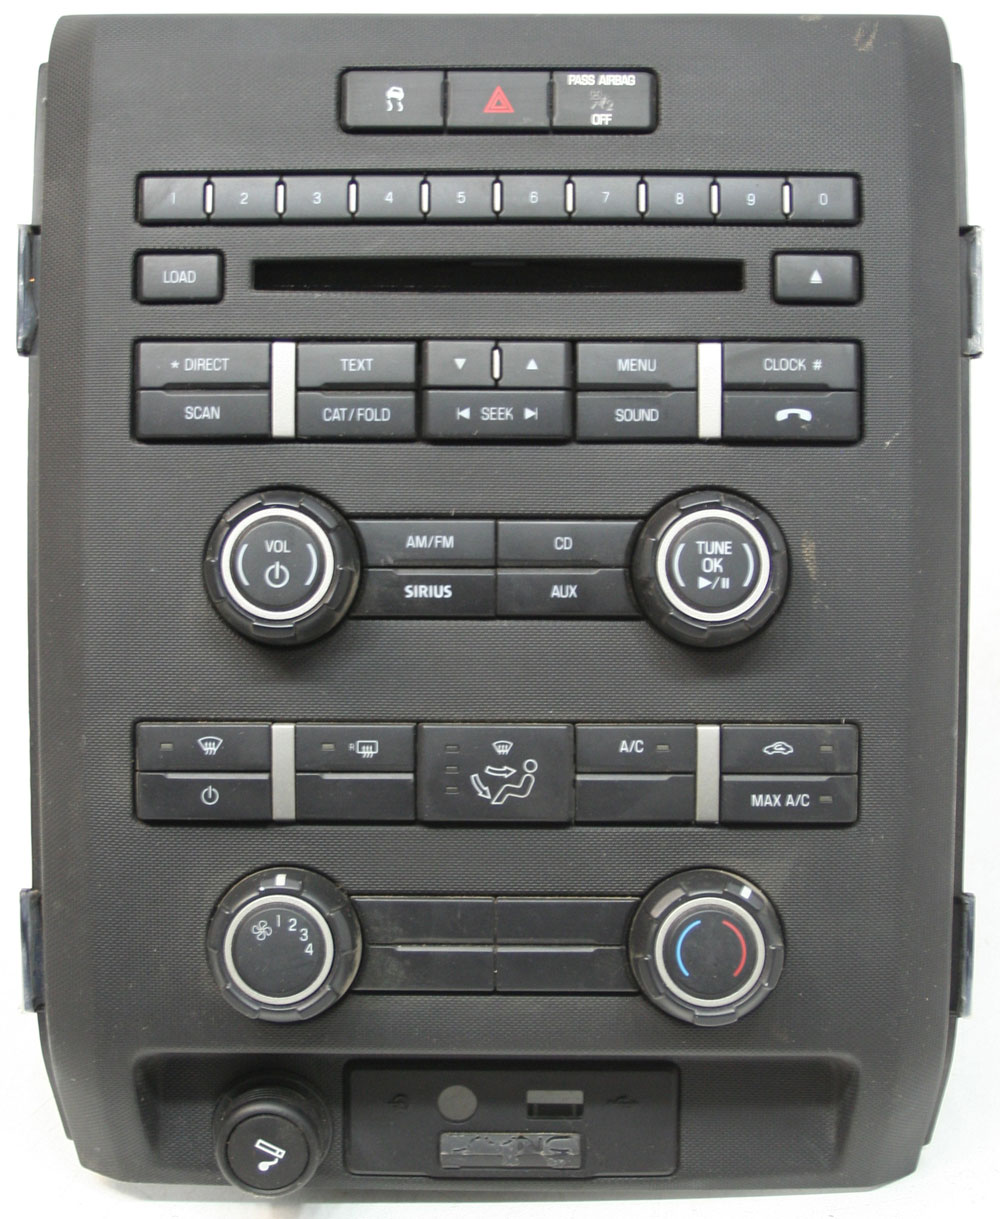 Ford F-150 Truck 2010 Factory Stereo Single Disc MP3 CD Player OEM Radio w/ Climate Controls